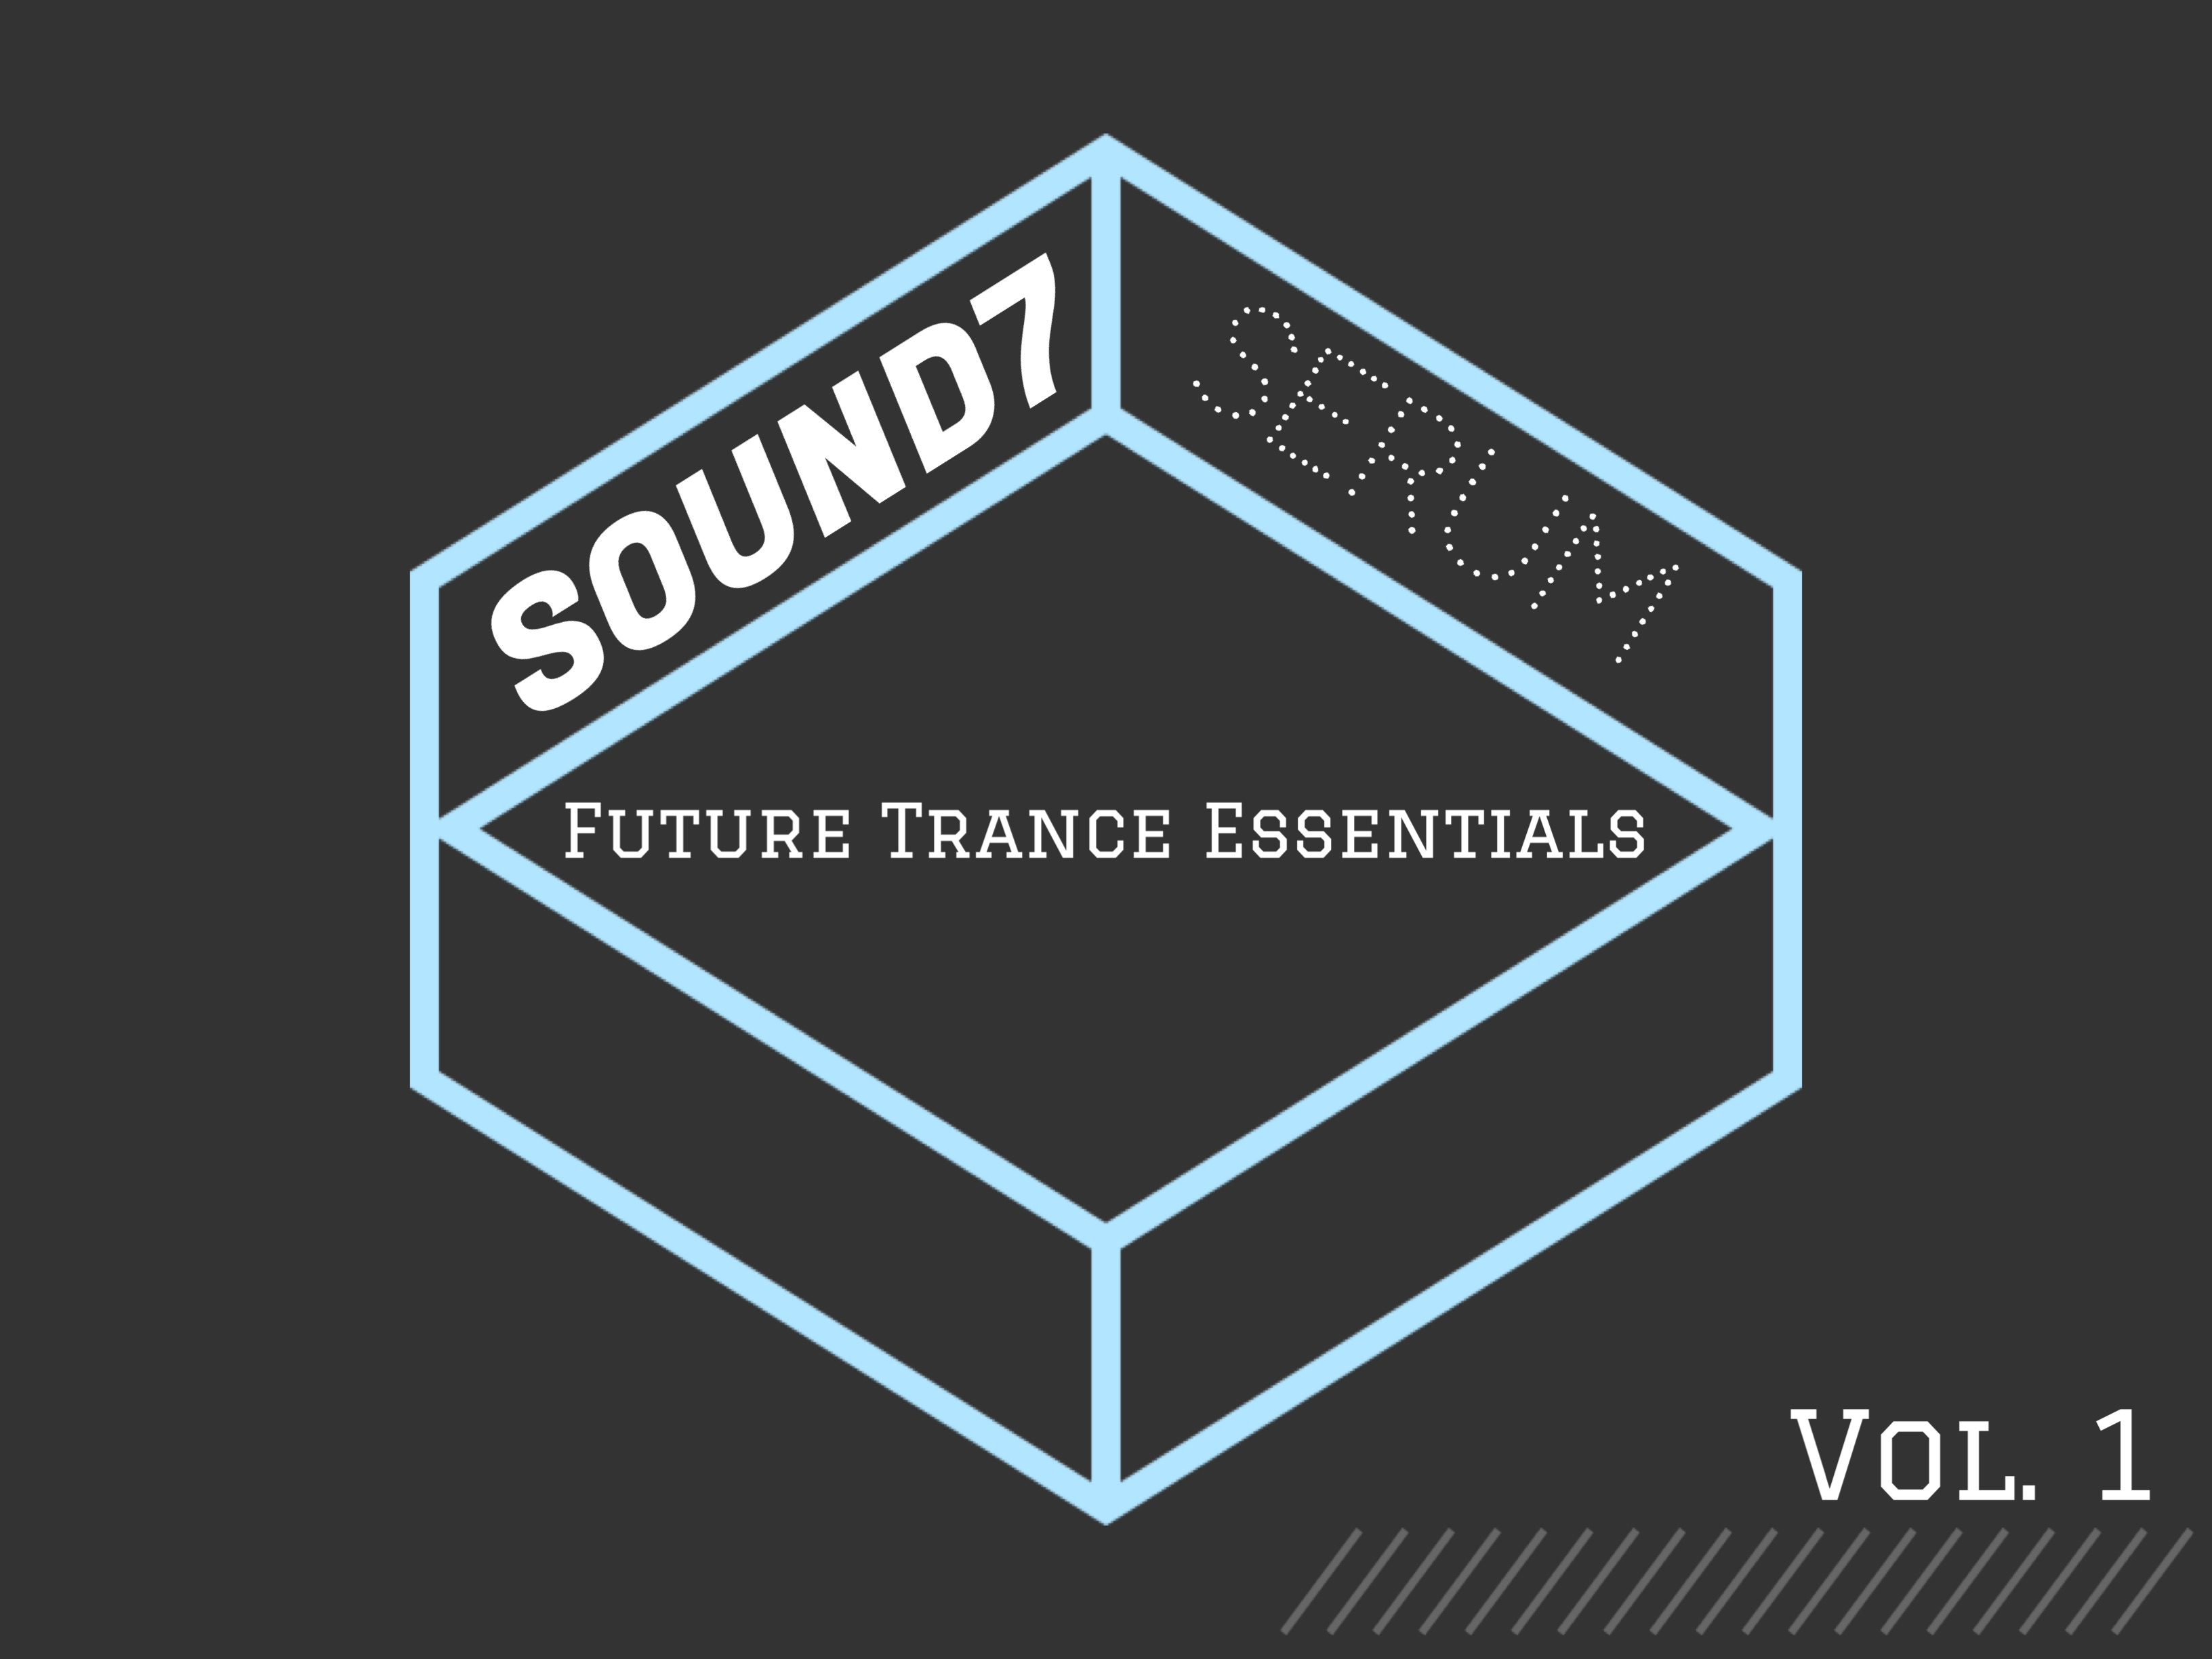 KVR: SERUM Future Trance Vol  1 by SOUND7 - Presets for Serum